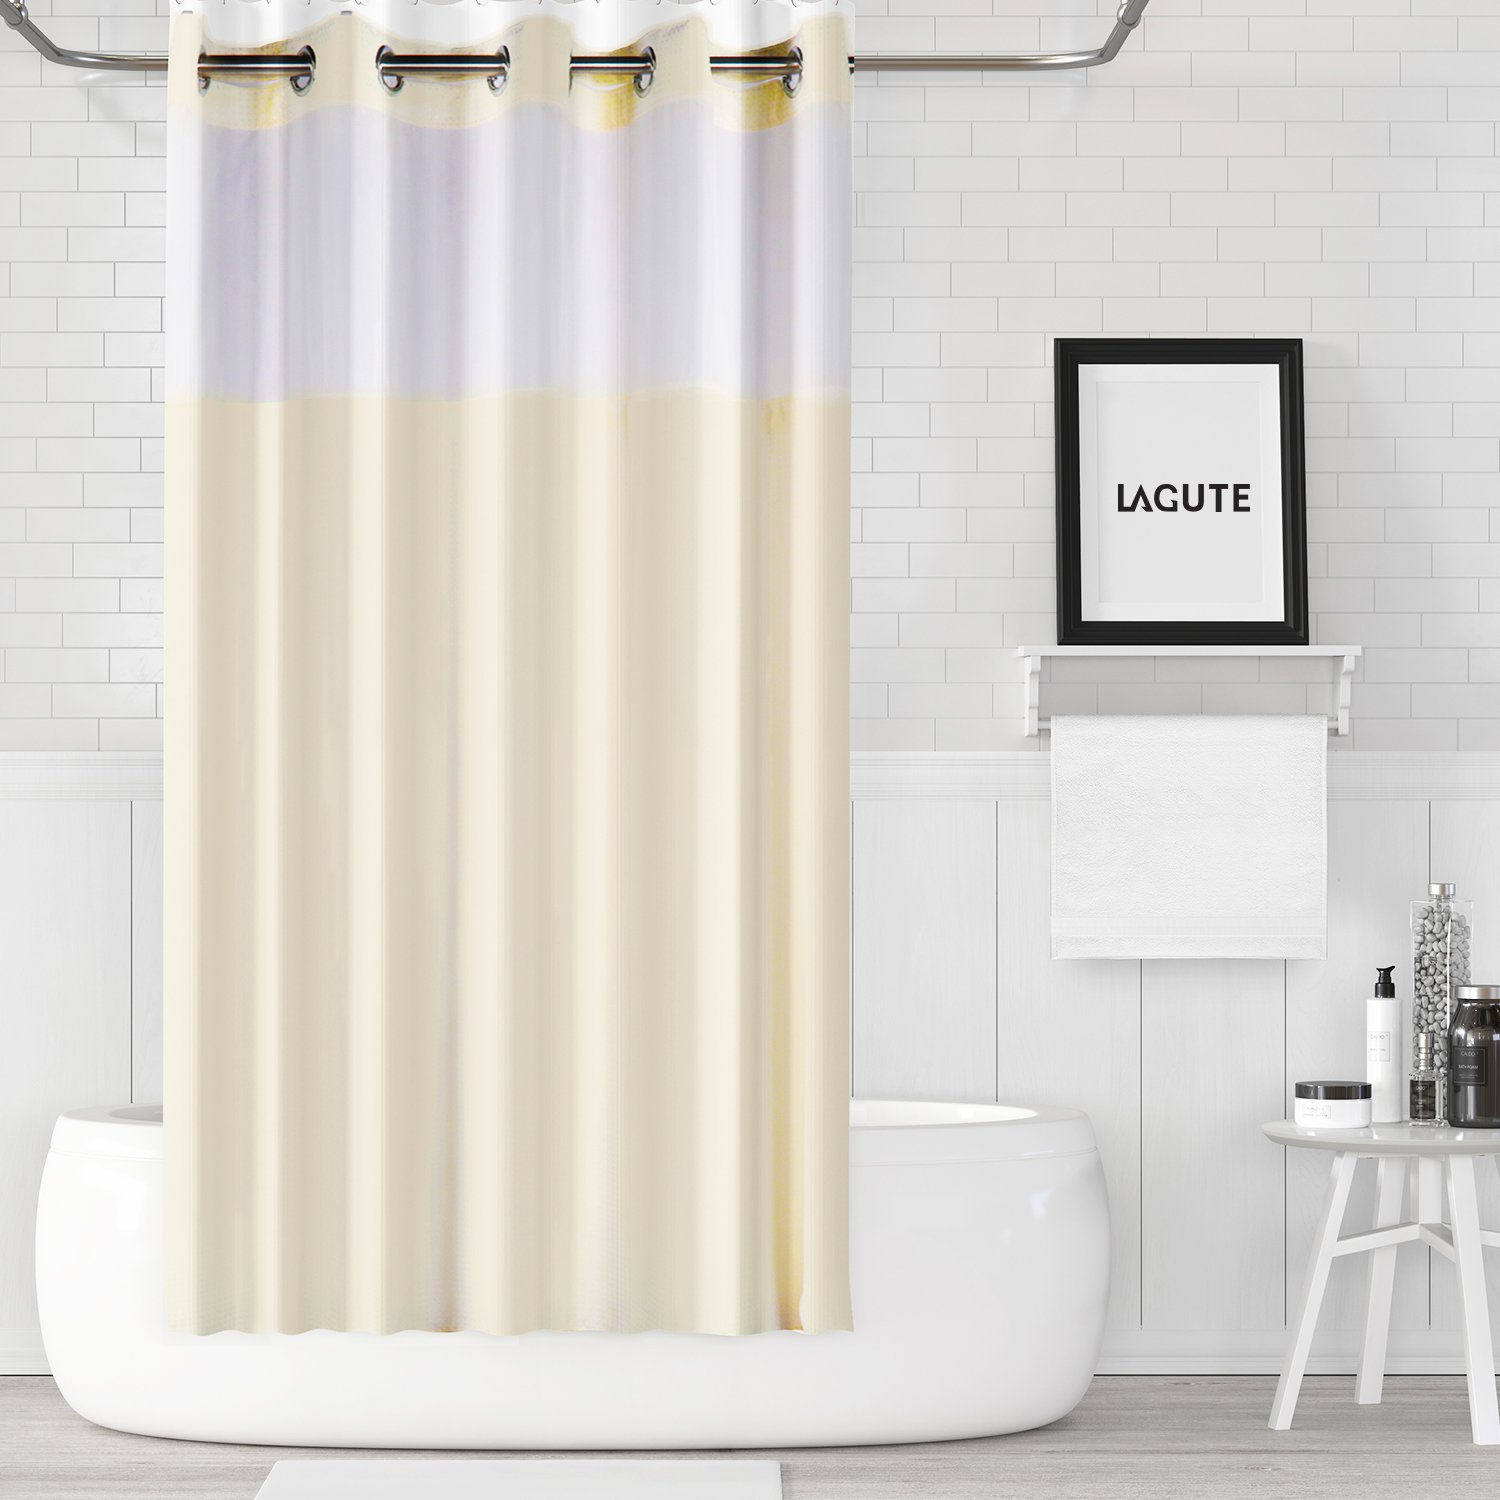 Lagute HS-301 SnapHook Shower w/Snap Bathroom Removable Polyester Liner [71''x 74''] | Translucent See-Through Window and Anti-Mold Waffle Fabric Bathtub Curtain, Cream